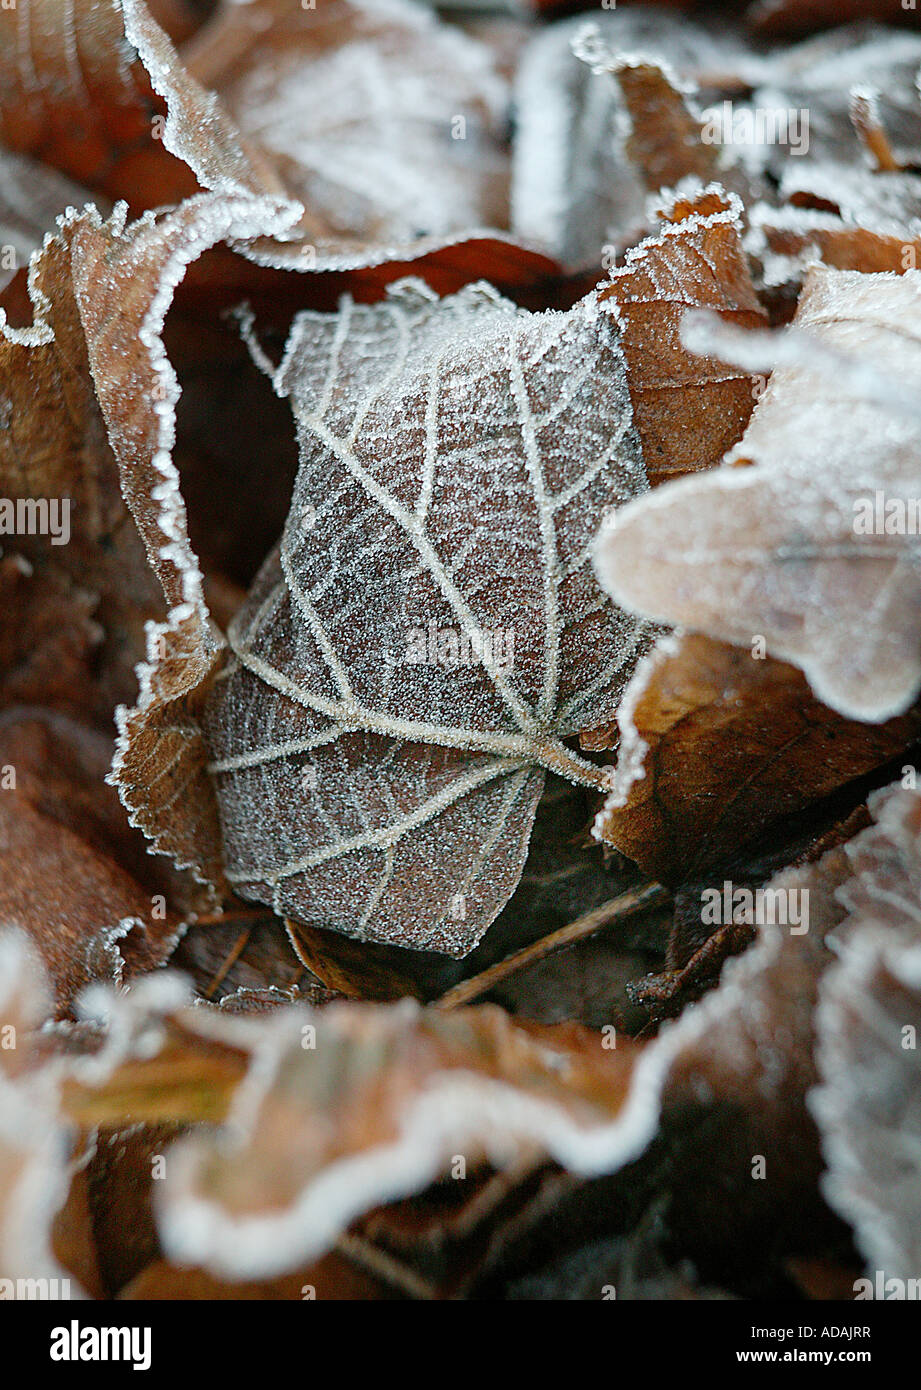 closely cropped frosty leaves lying on the ground. Clean subtle rural winter image - Stock Image